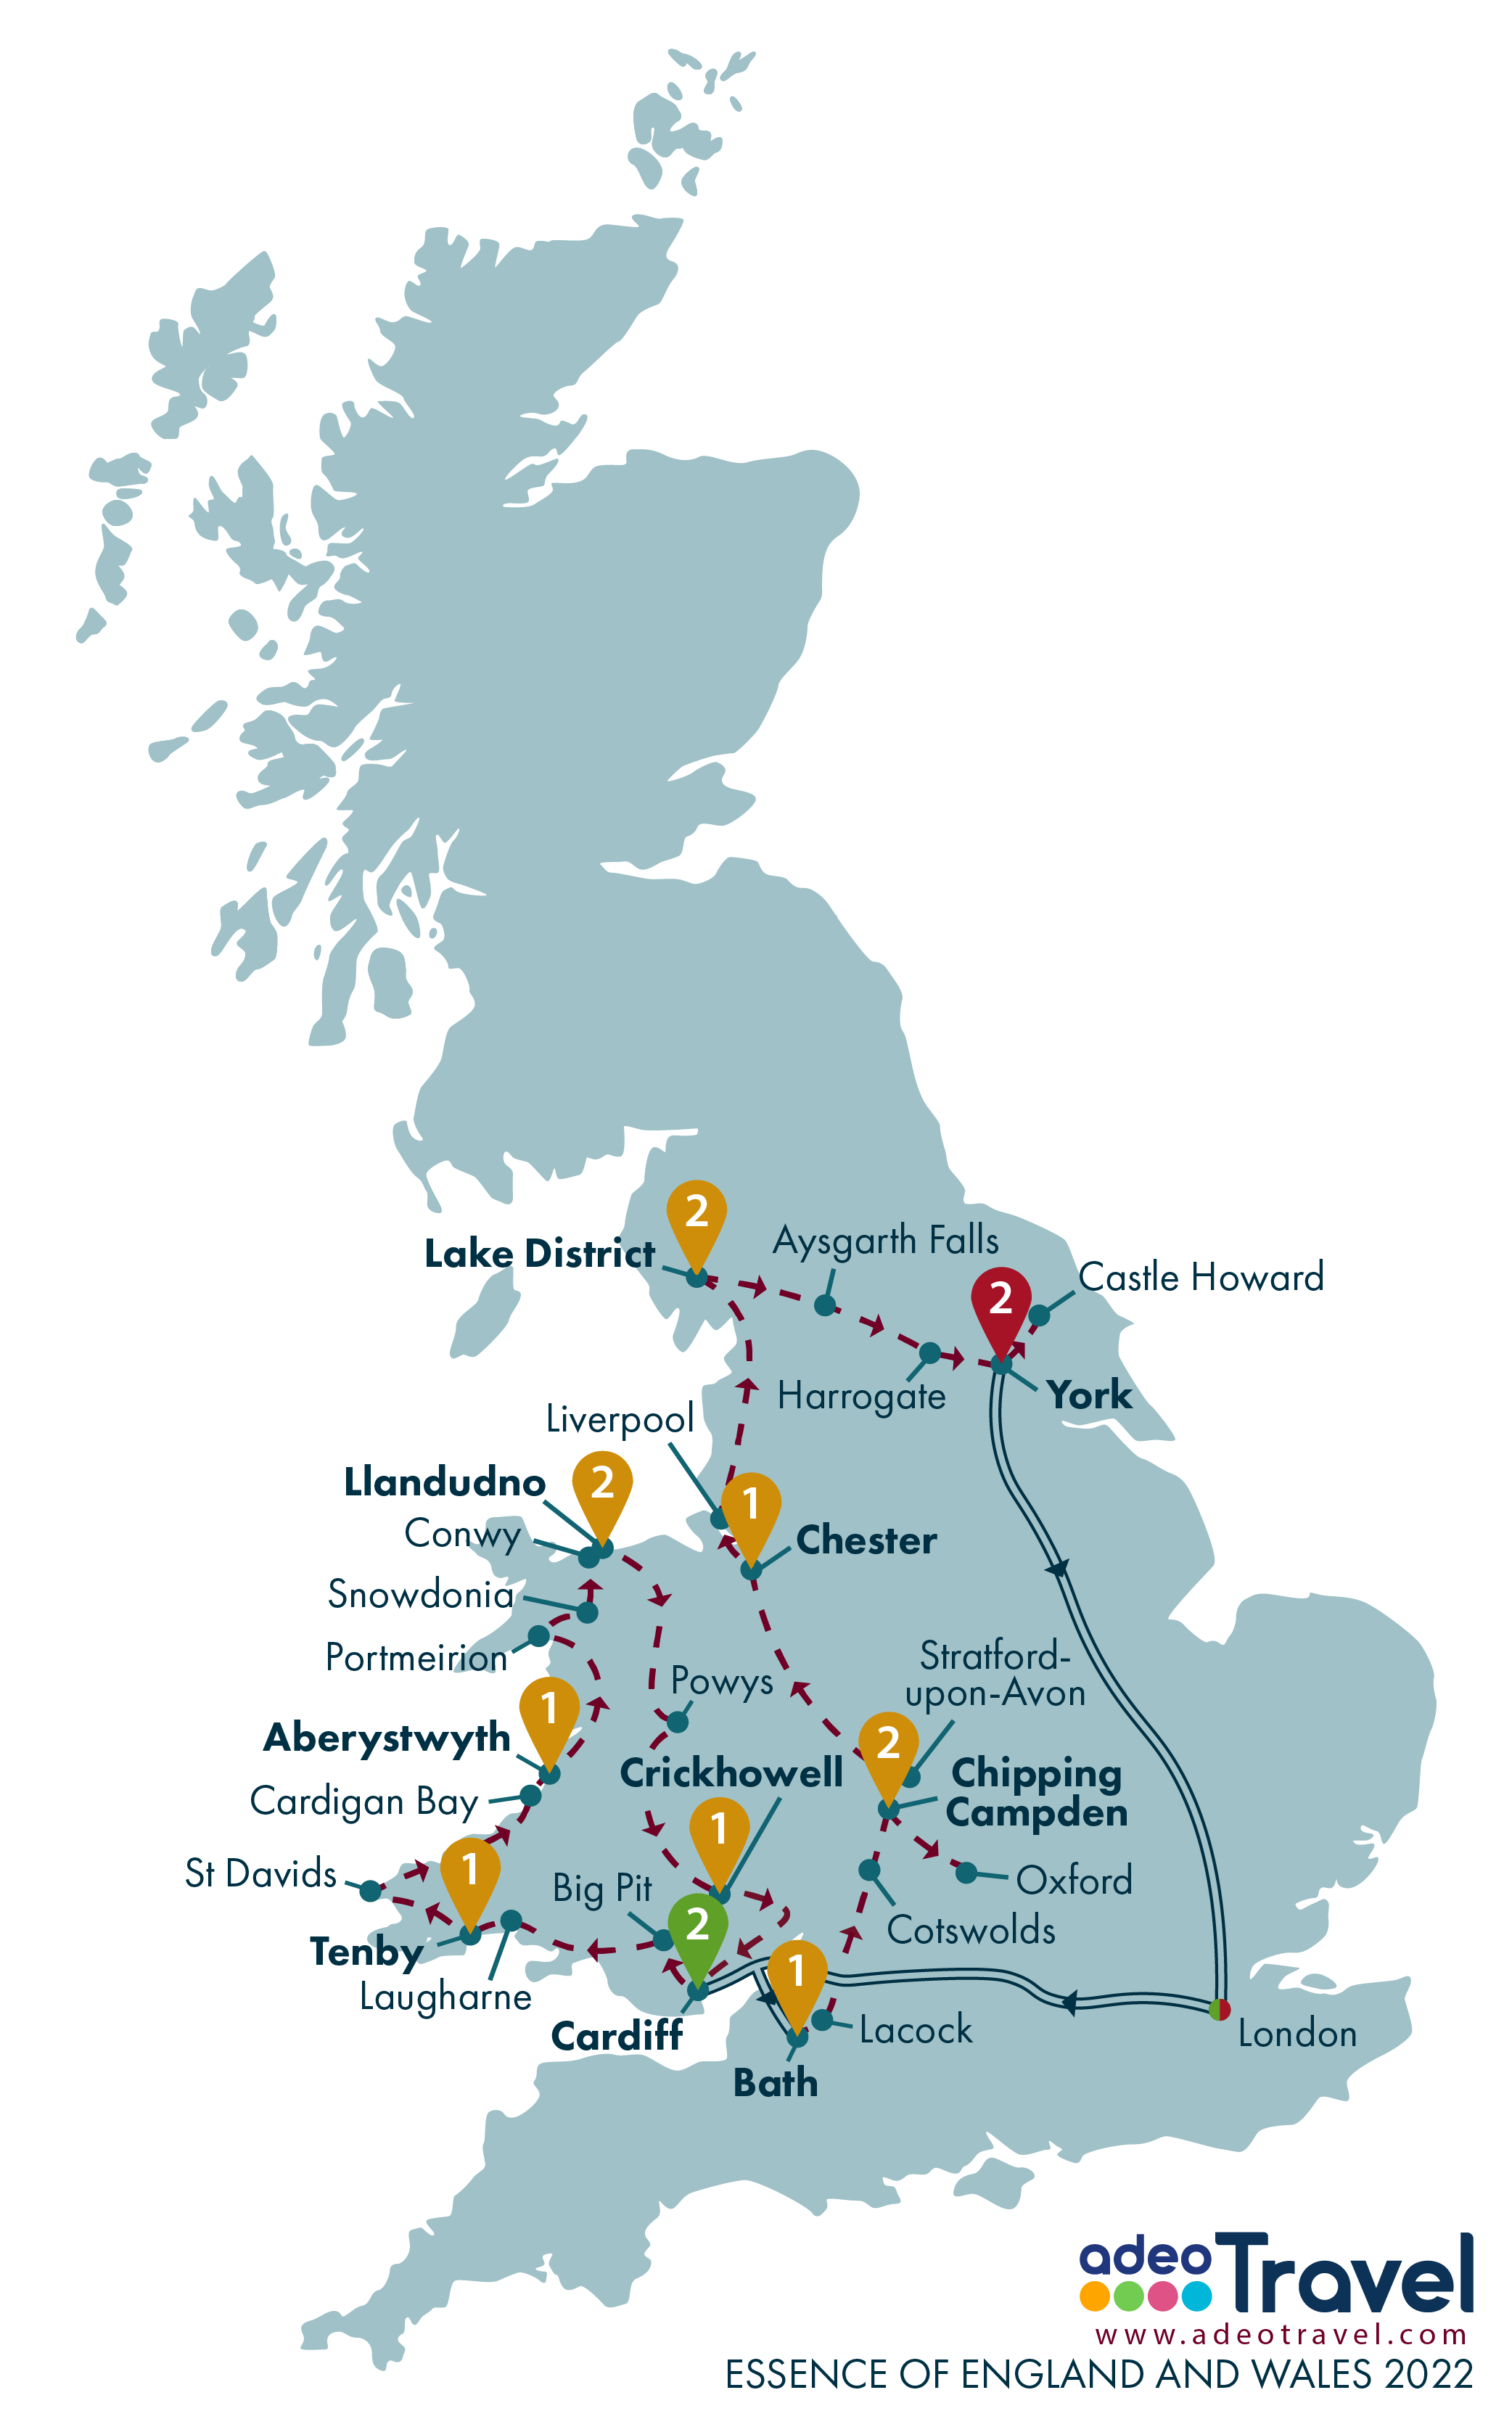 Map - Essence of England and Wales 2022